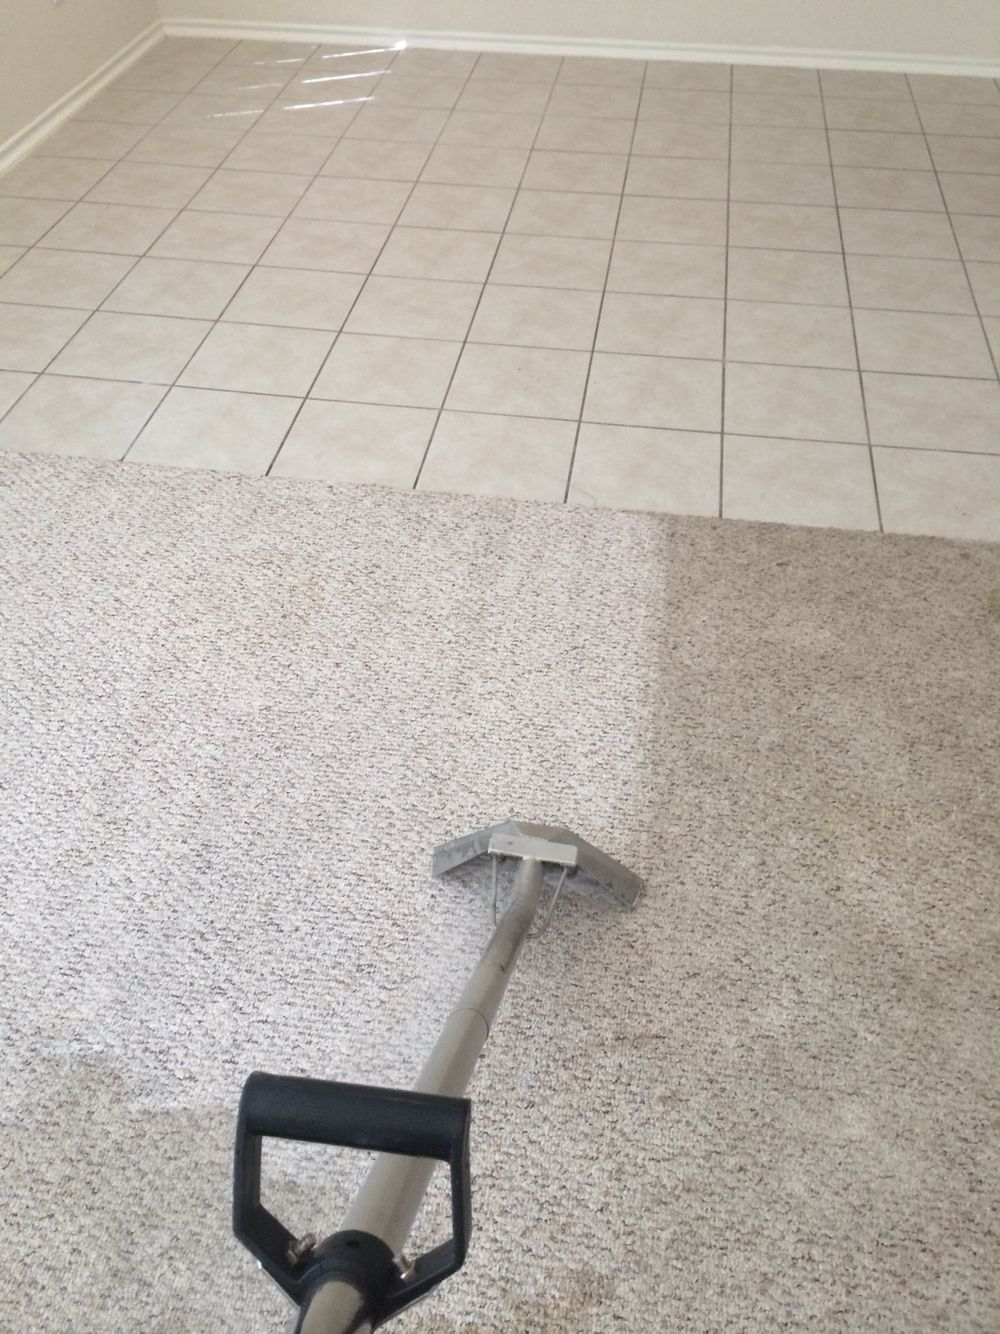 Carpet cleaning experts in action How to clean carpet